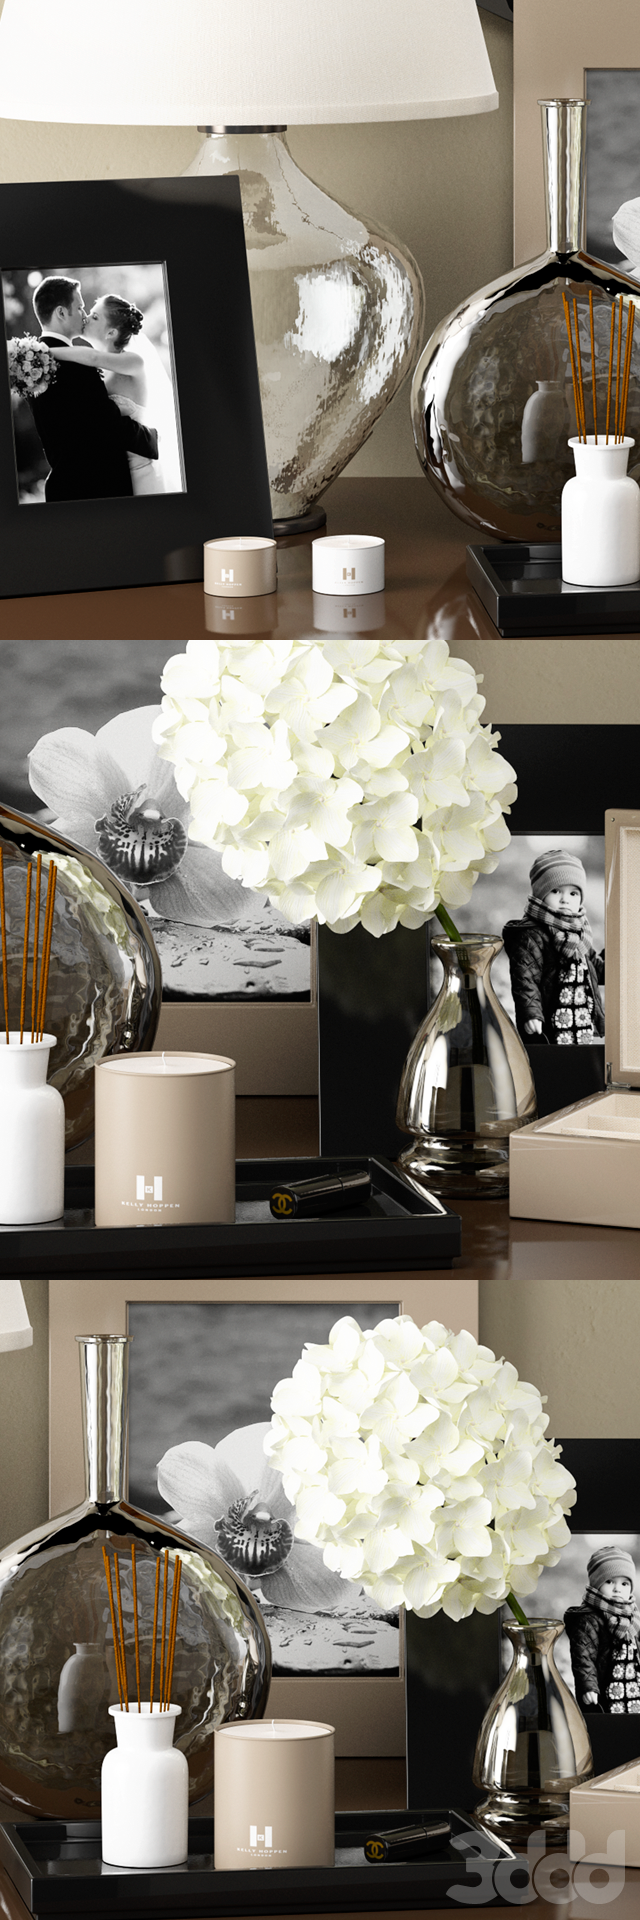 Dressing table decoration by Kelly Hoppen